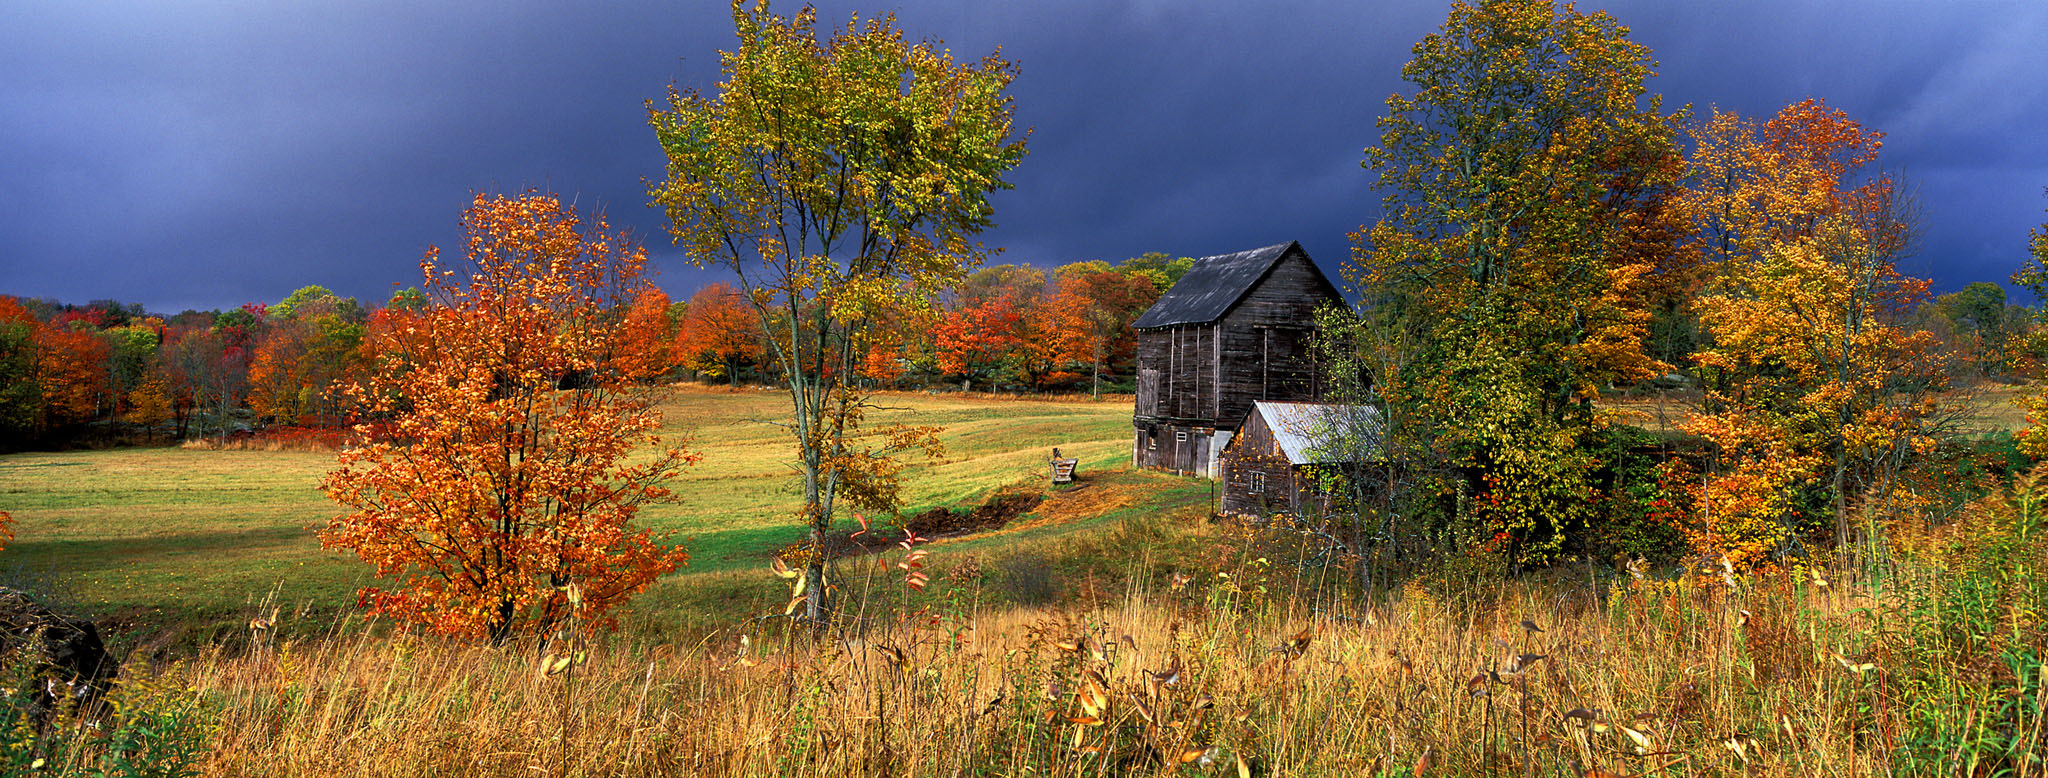 Photograph Orrville, Ontario by Ian Taylor on 500px